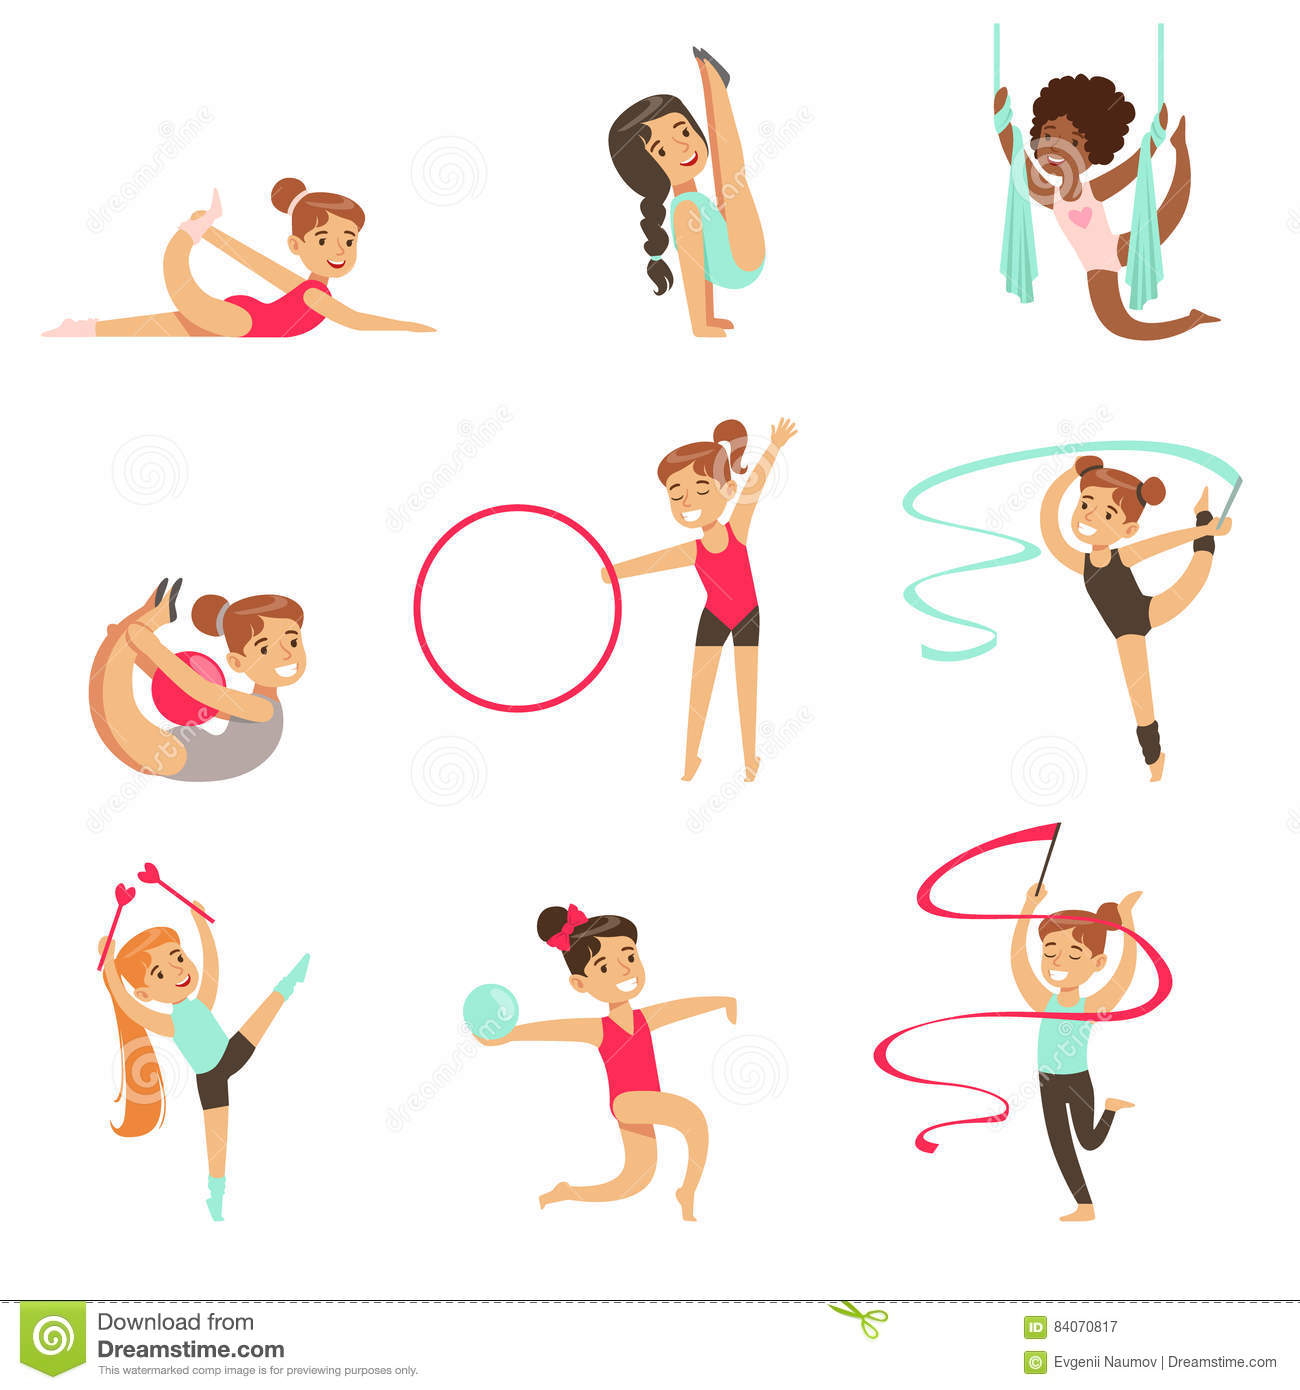 Little Girls Doing Gymnastics And Acrobatics Exercises In Class Set Of Future Sports Professionals